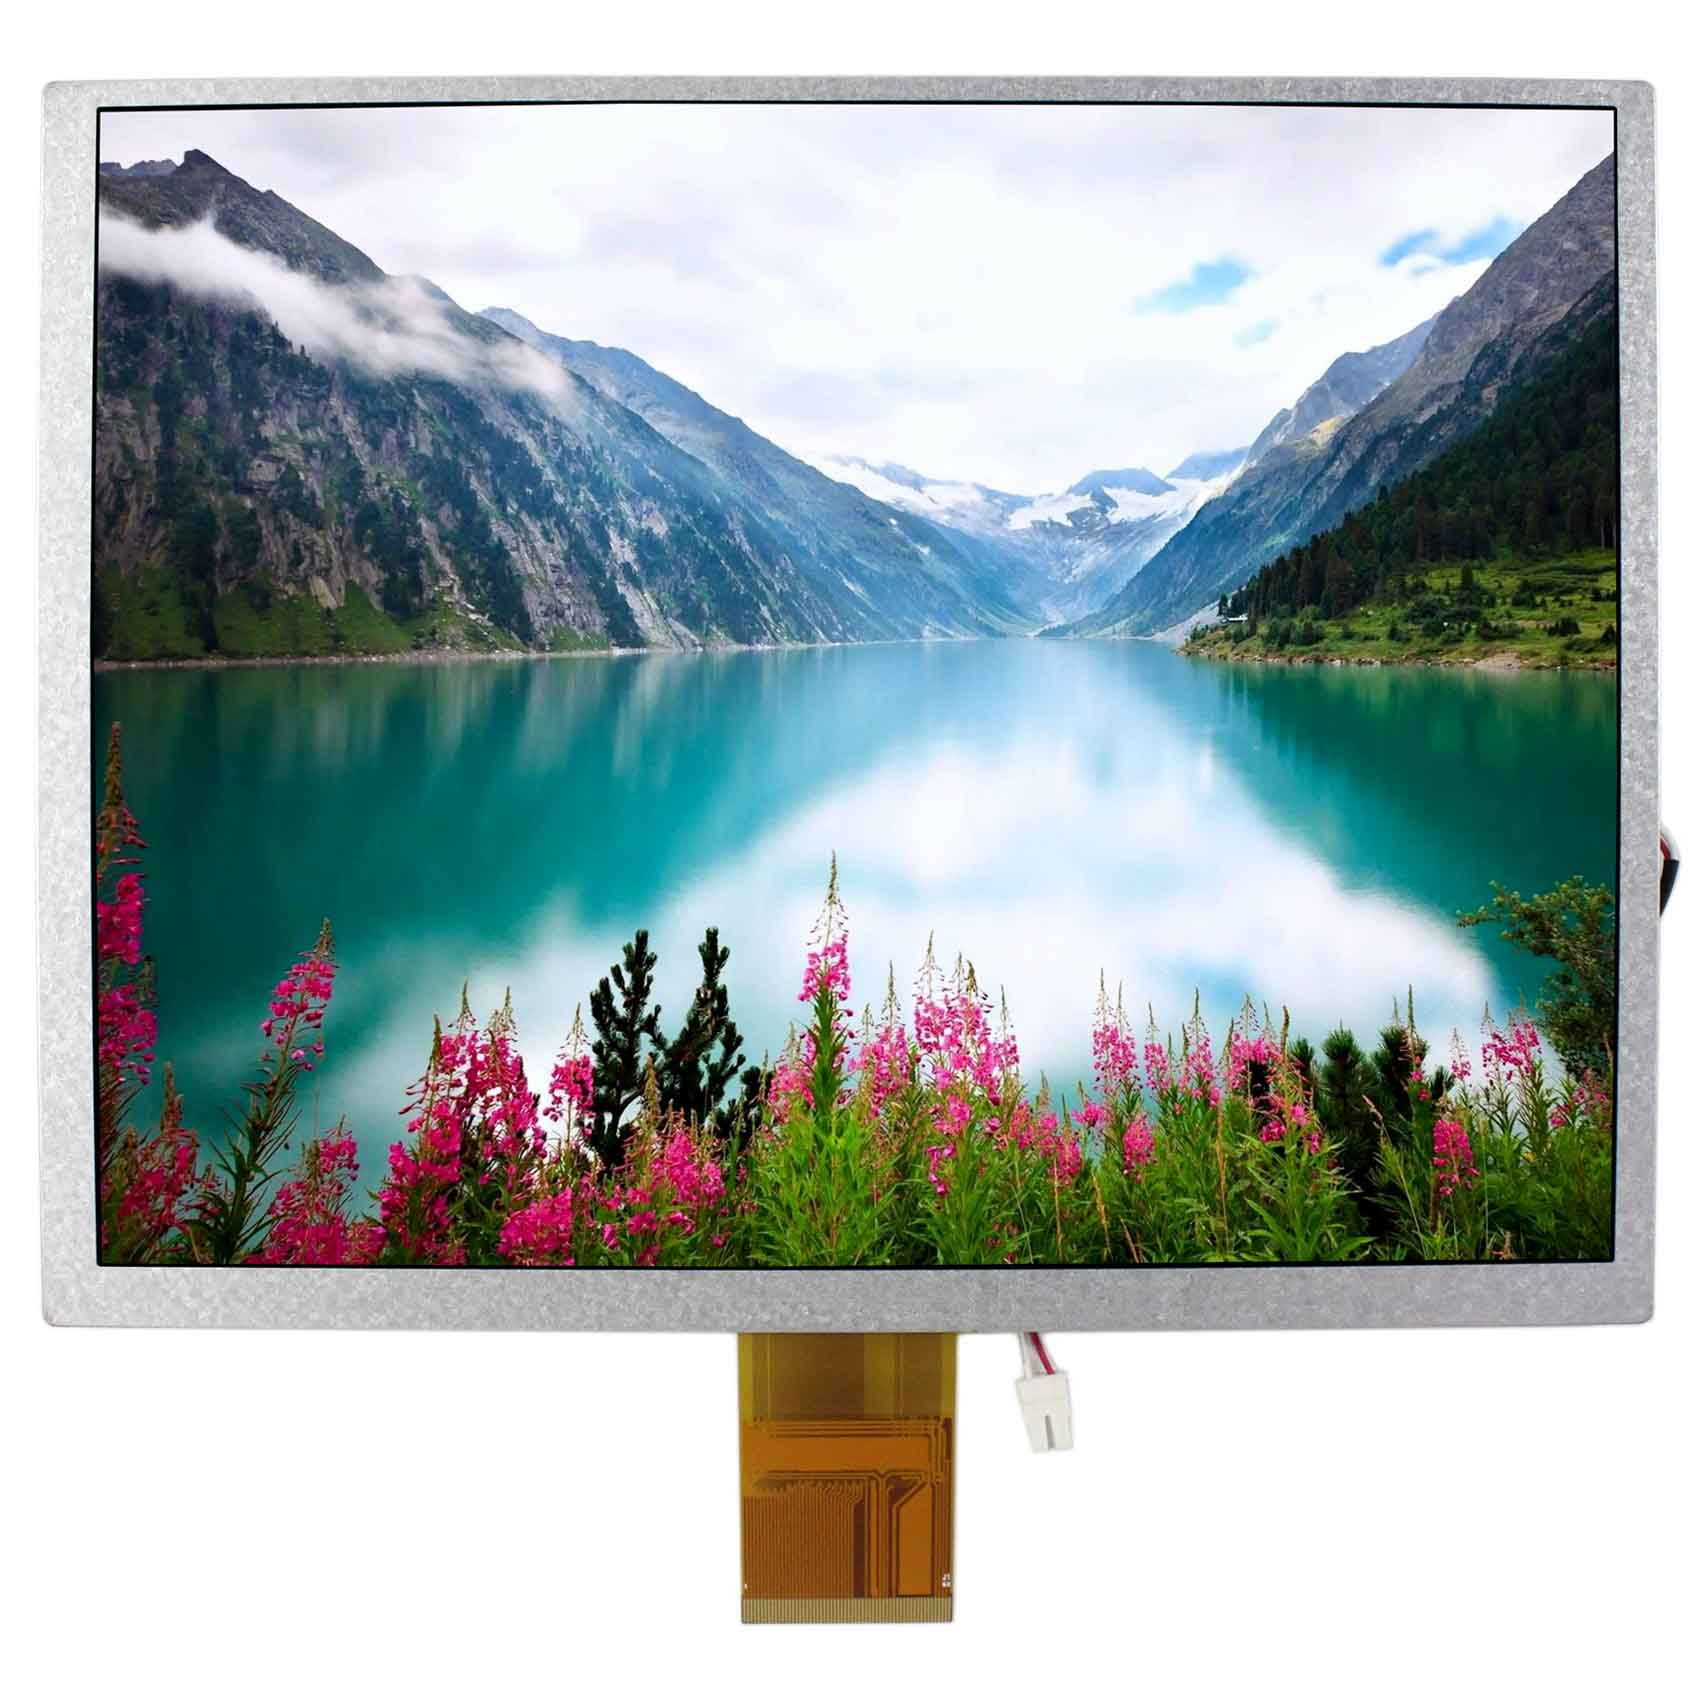 LED Backlight 10.4 10.4inch  800X600 LCD Screen LSA40AT9001LED Backlight 10.4 10.4inch  800X600 LCD Screen LSA40AT9001